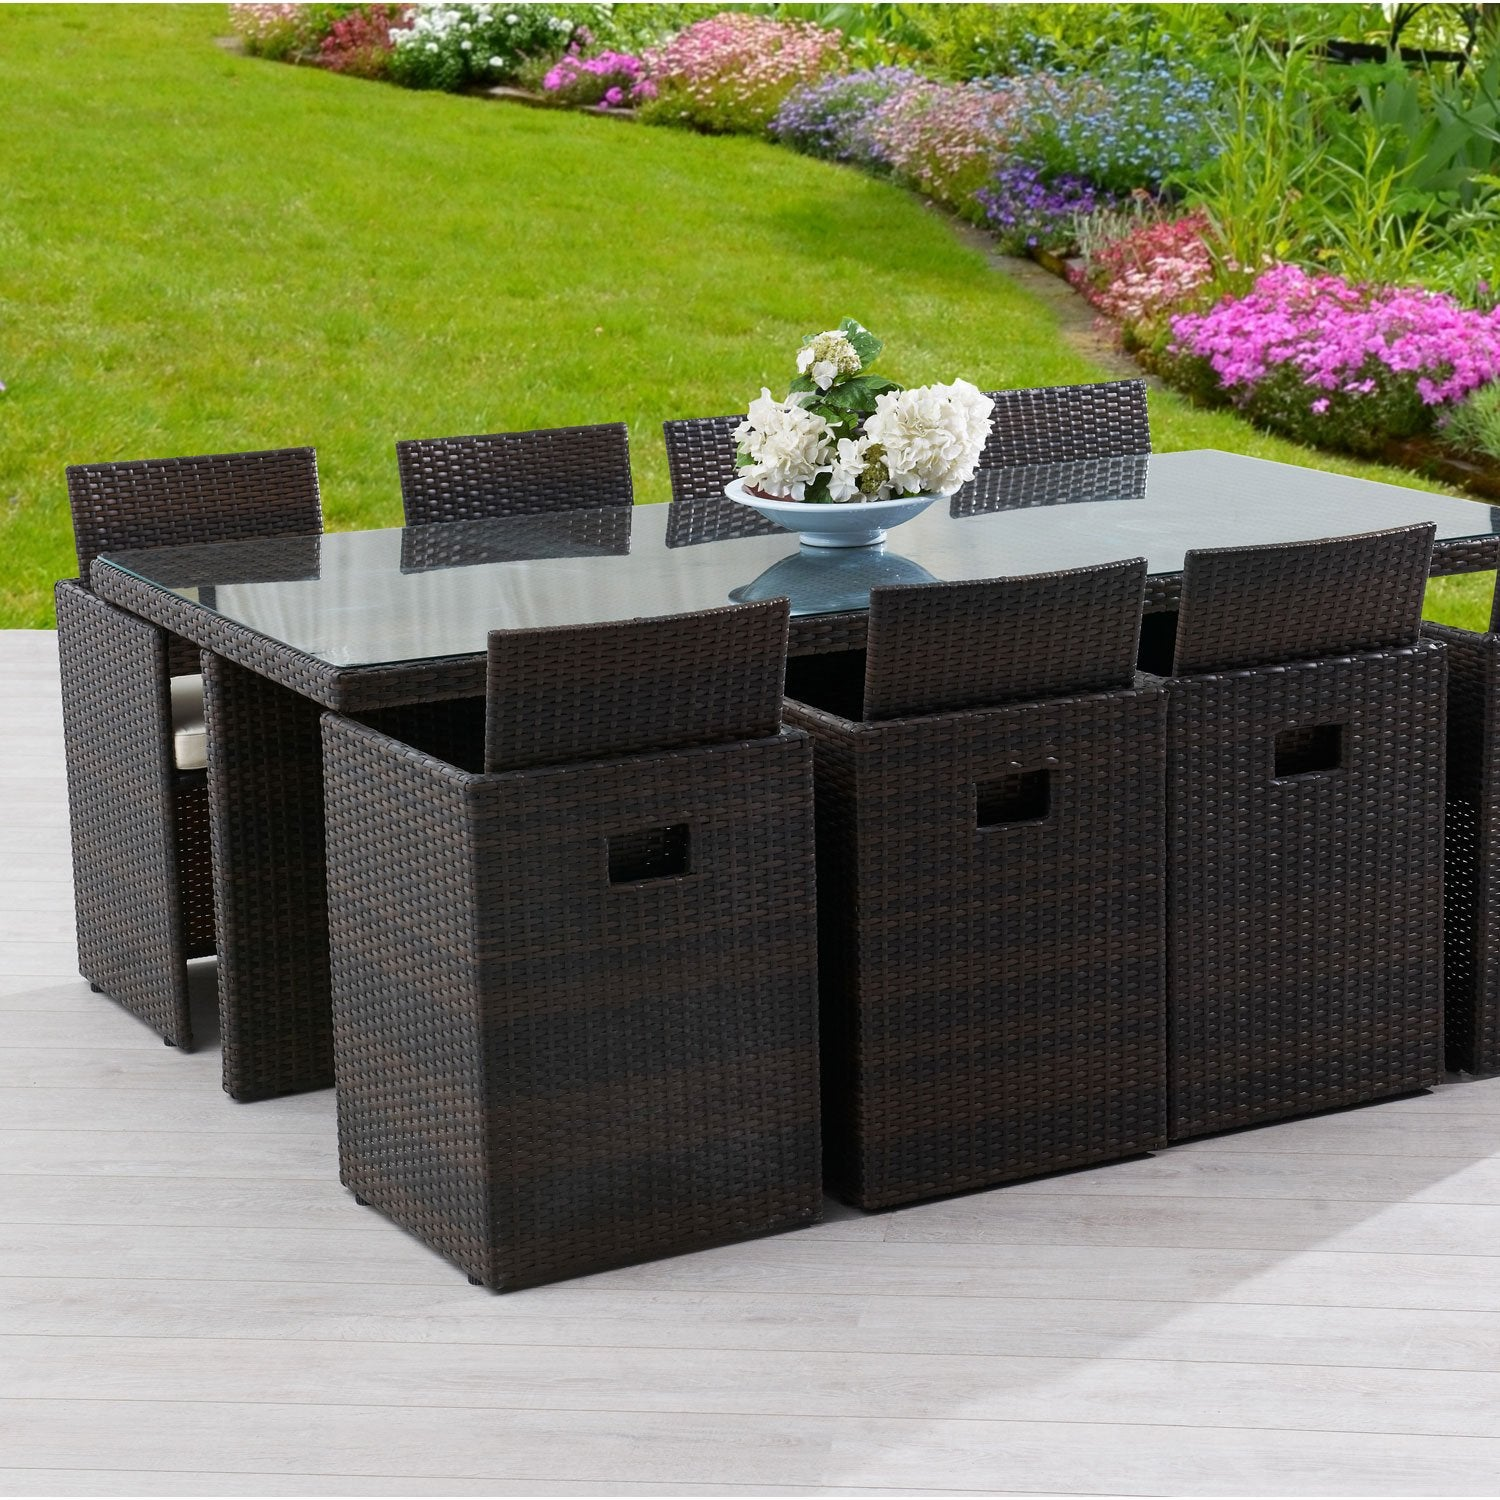 Salon de jardin encastrable r sine tress e marron 1 table for Balancines para jardin leroy merlin